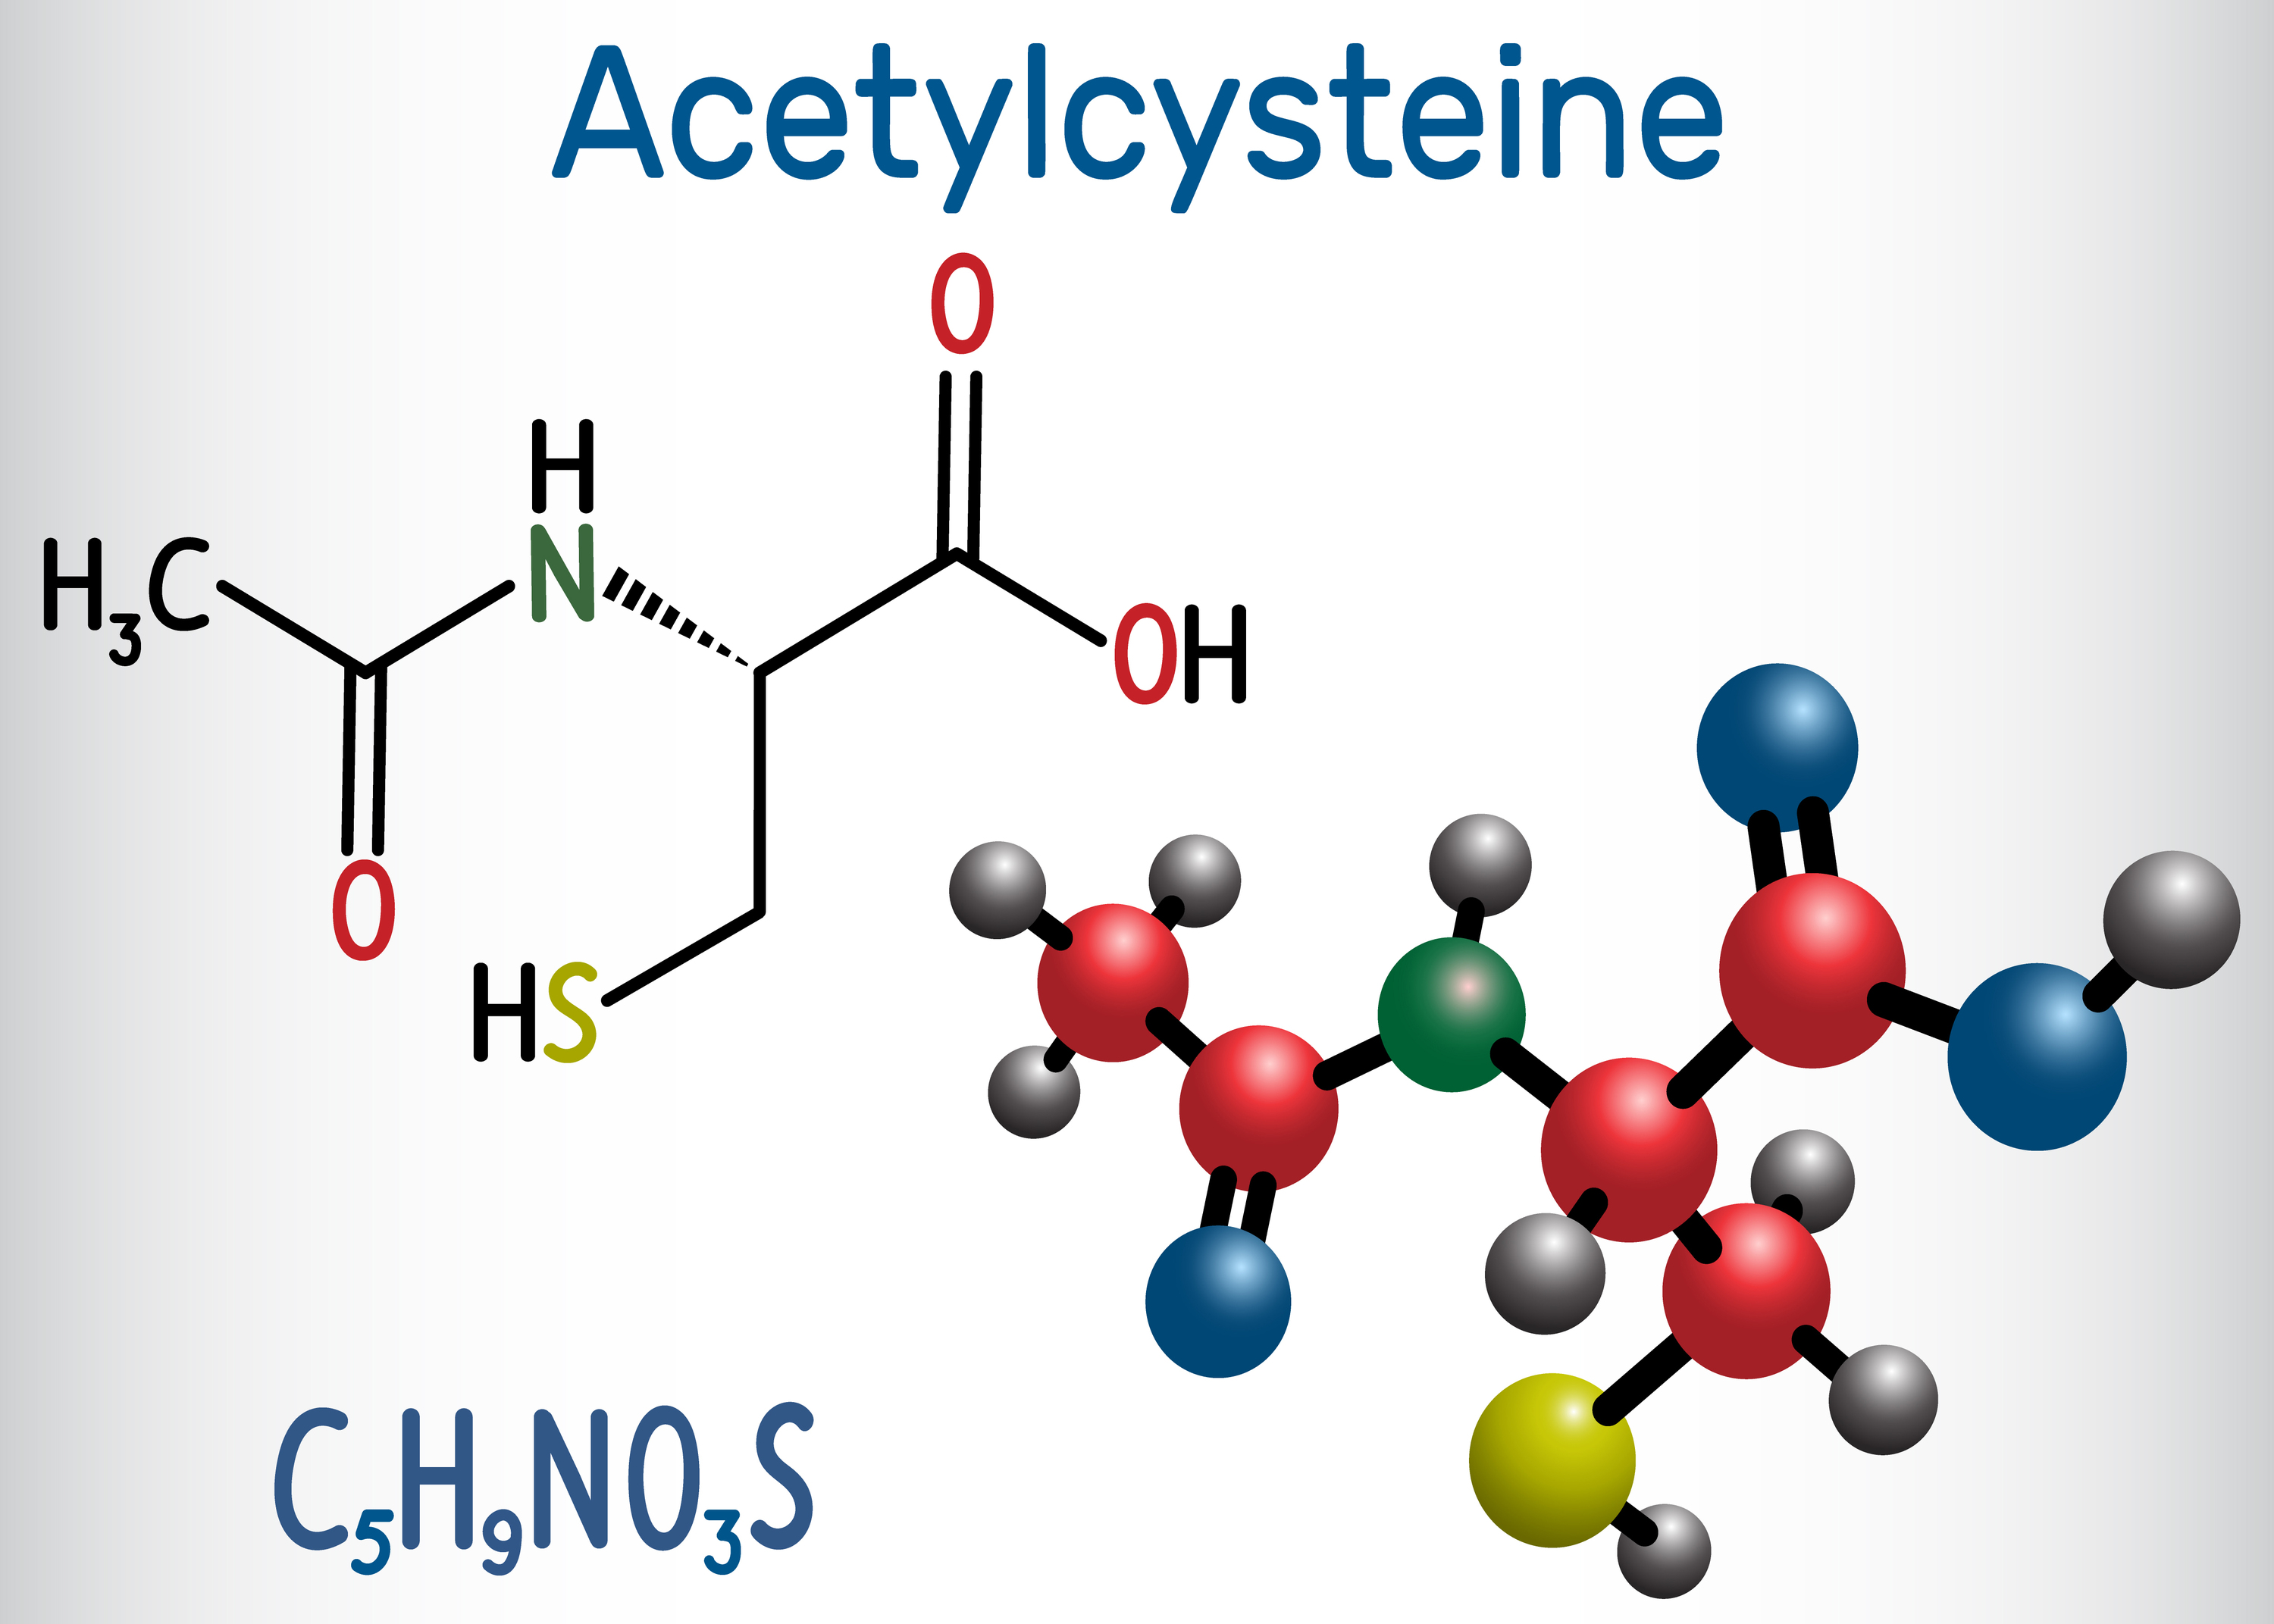 Acetylcysteine (N-acetylcysteine, NAC) drug molecule. Structural chemical formula and molecule model. Cysteine and NAC.